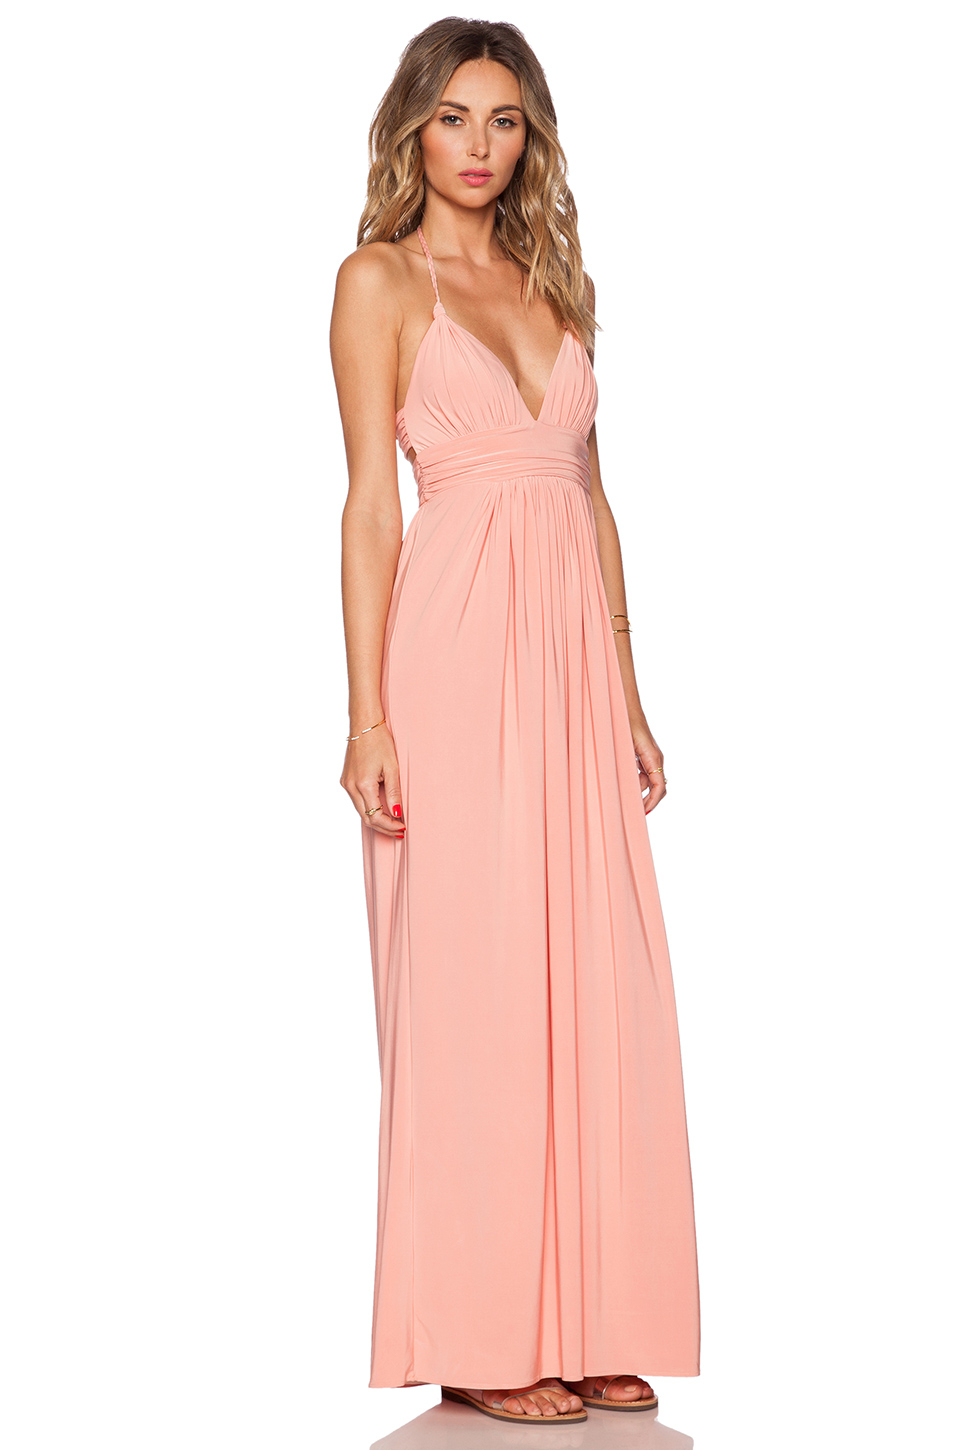 T-bags X Back Maxi Dress in Pink  Lyst